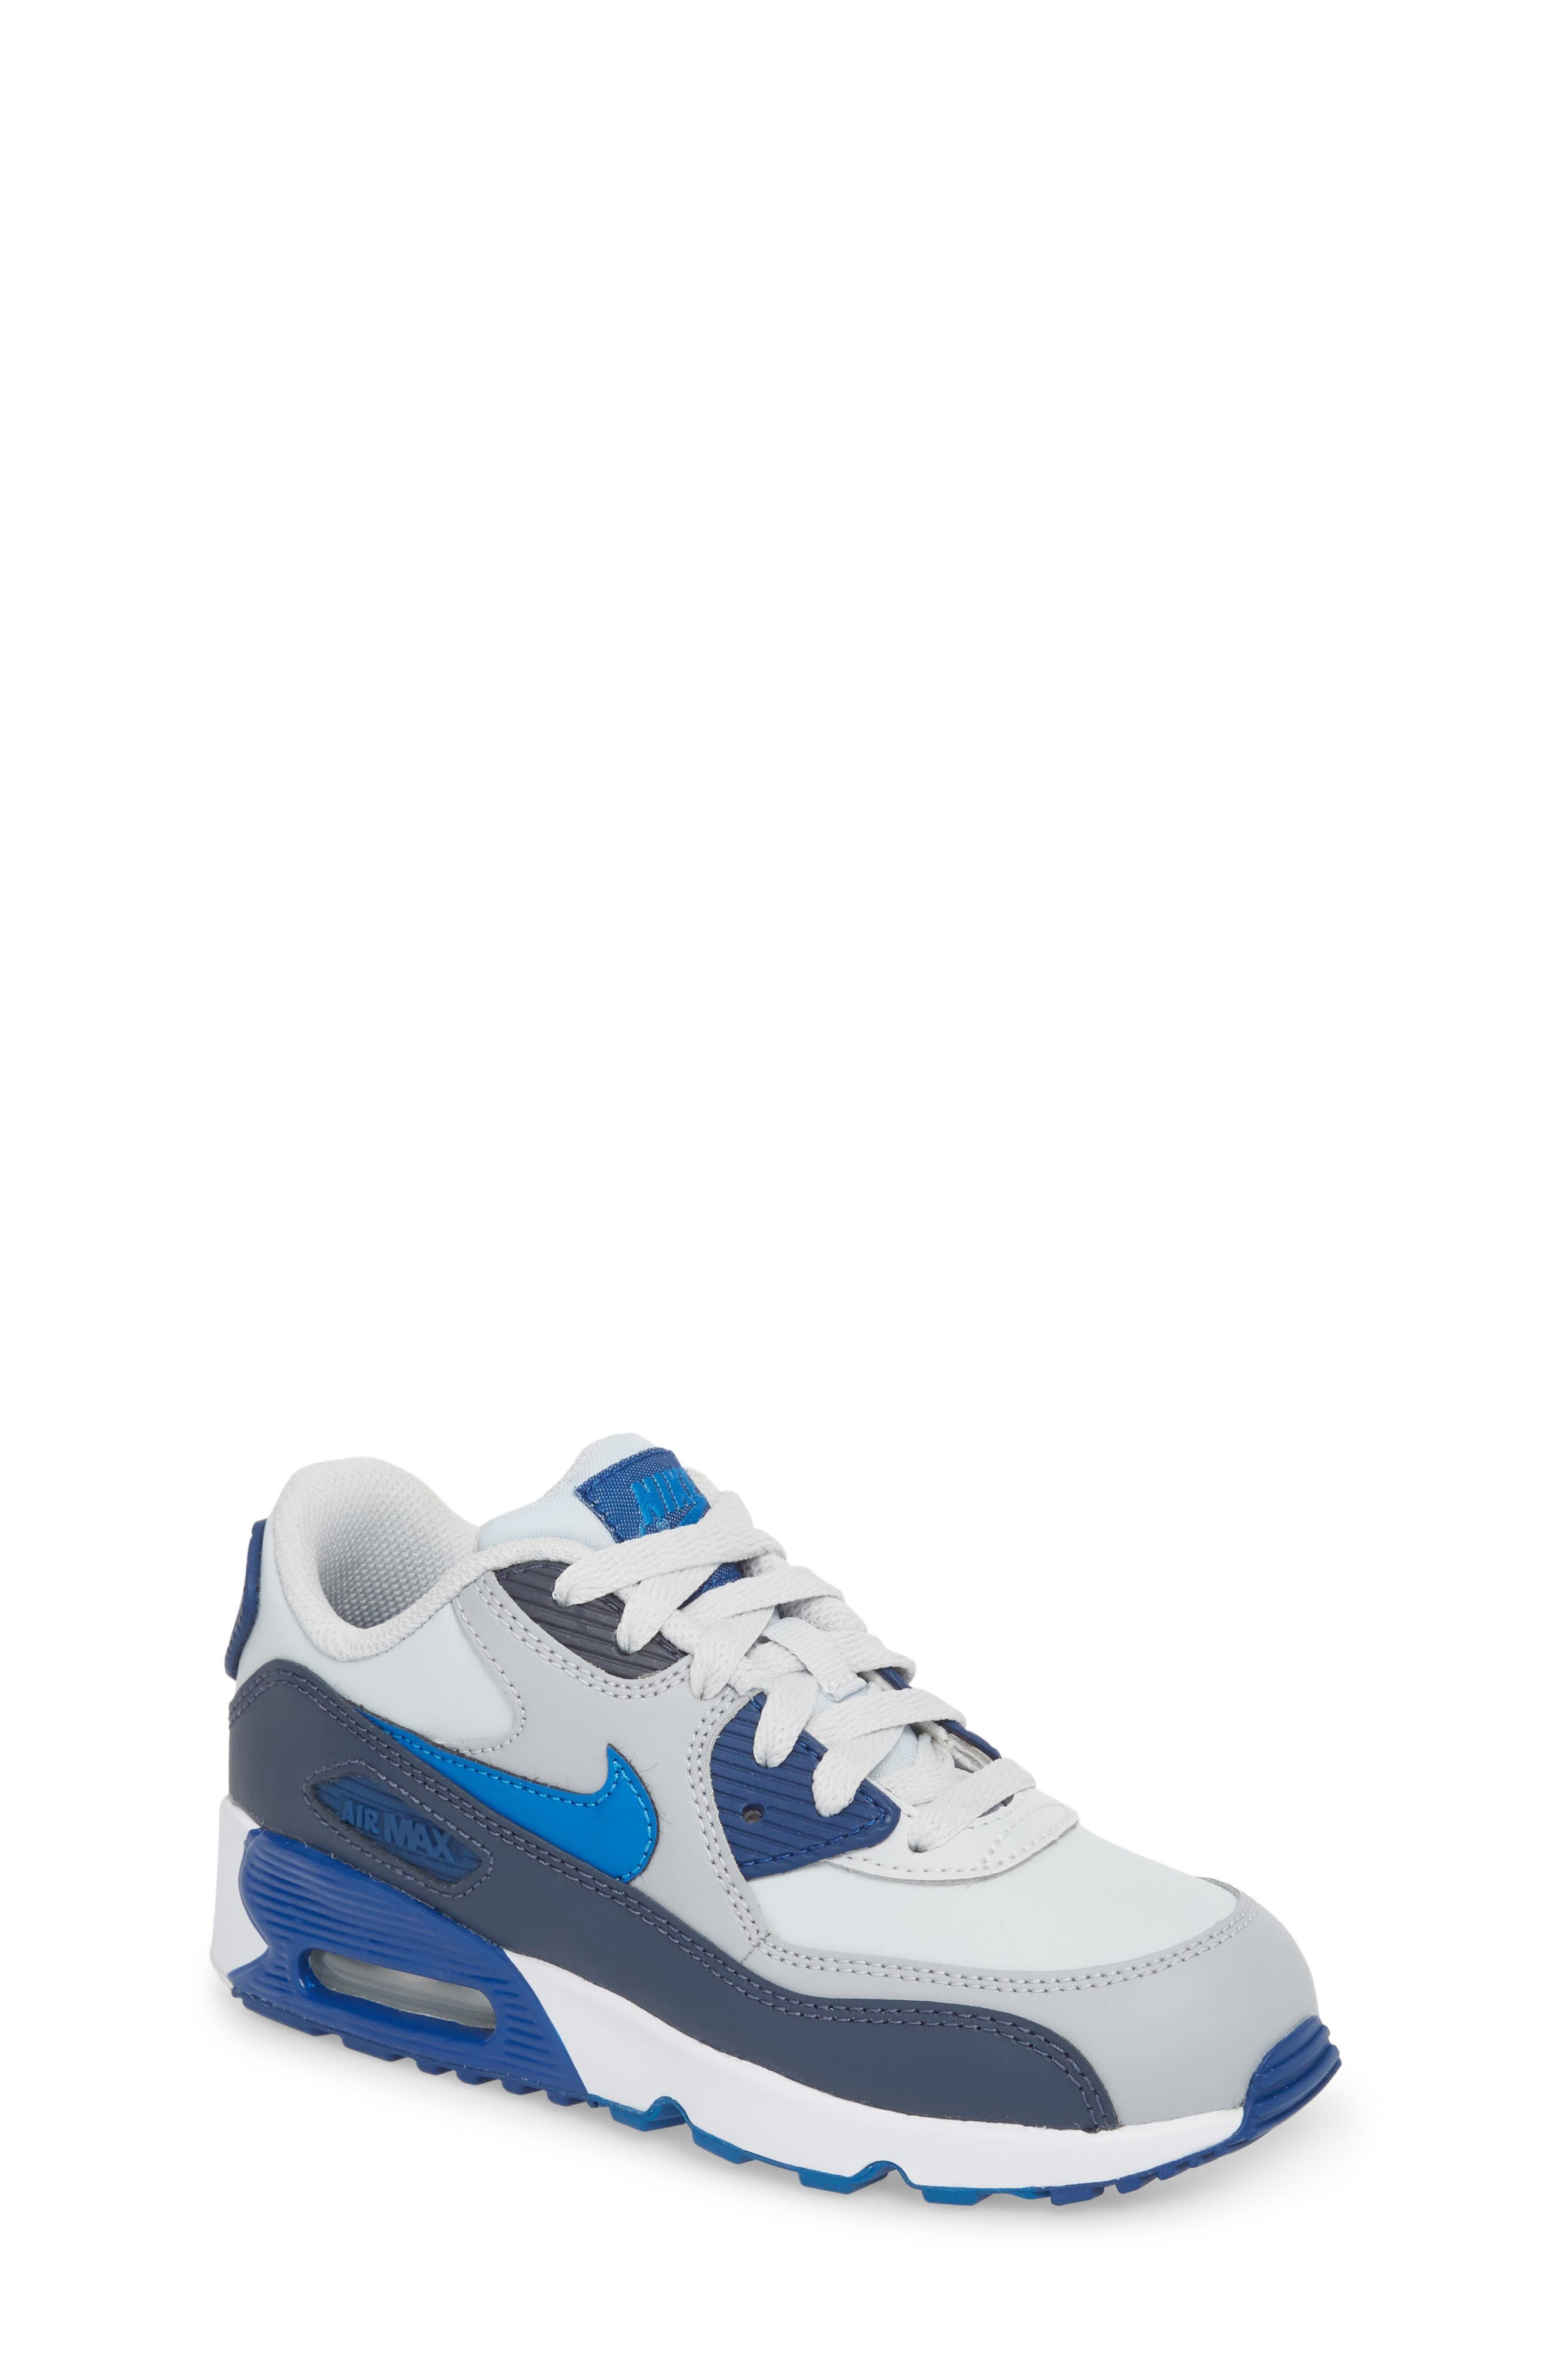 Air Max 90 Sneaker,                         Main,                         color, Blue Nebula/ Wolf Grey